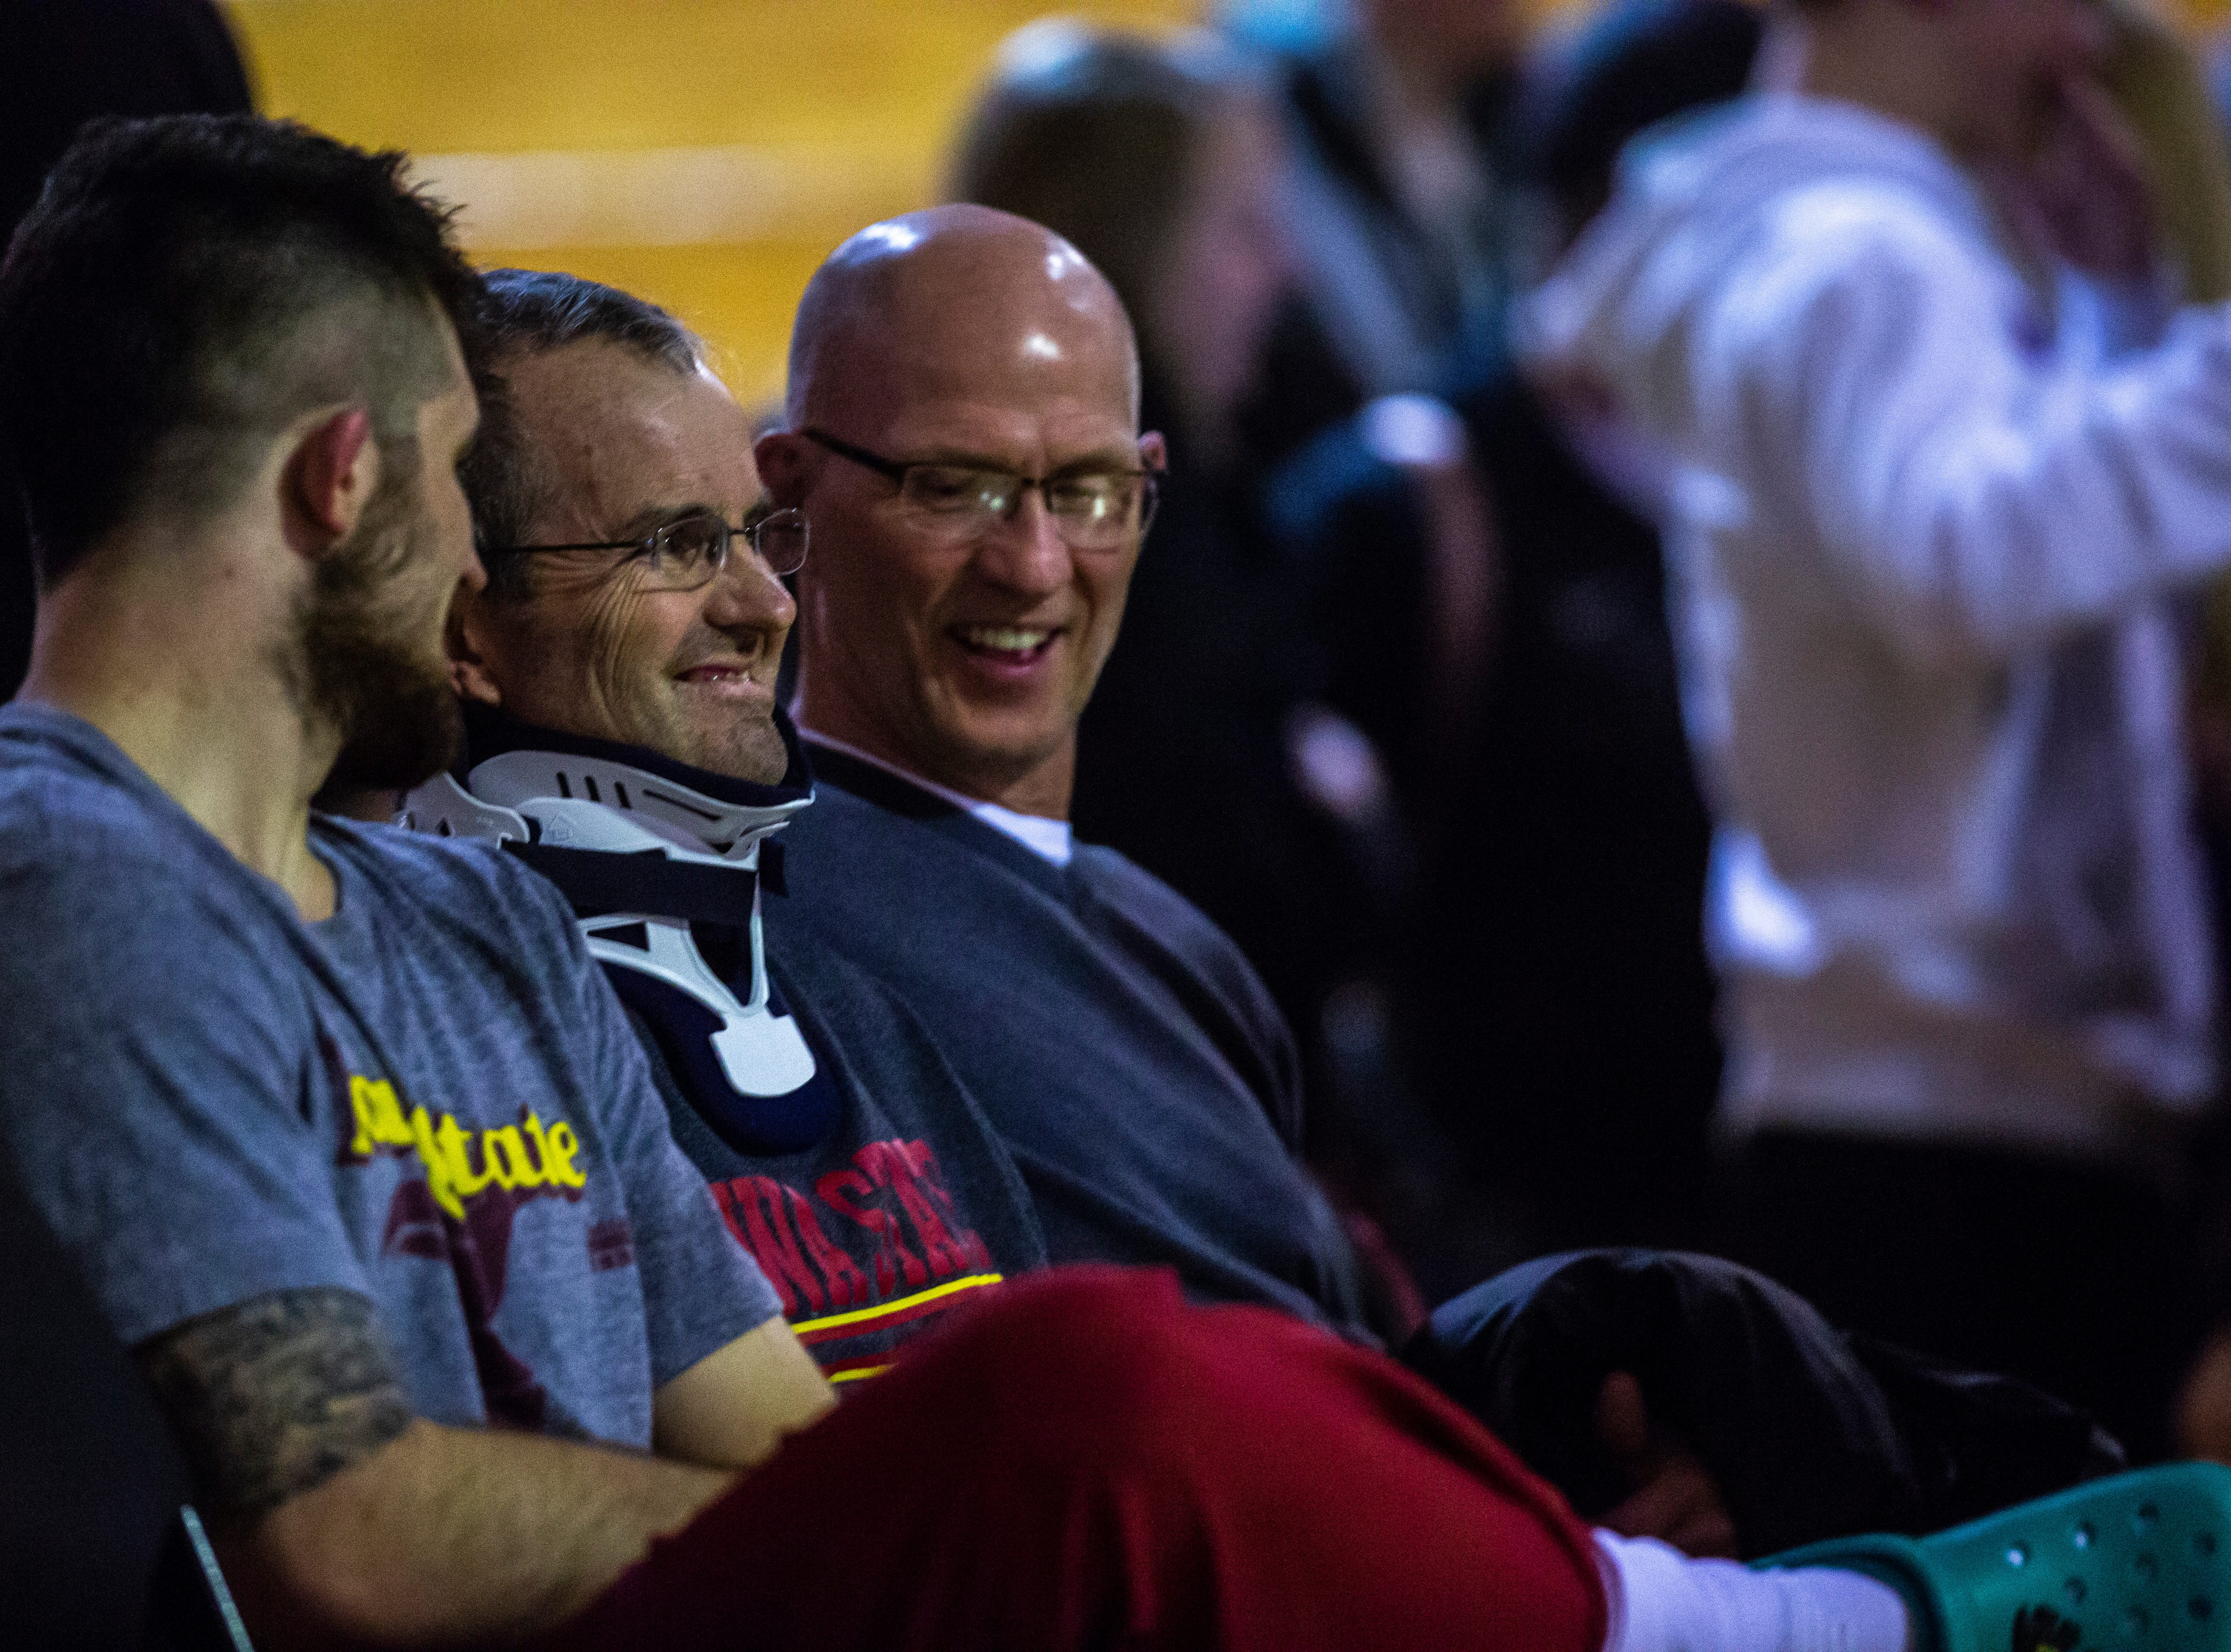 Iowa State's Willie Miklus sits with his father Garry after a NCAA Big 12 wrestling dual against Northern Iowa on Thursday, Feb. 21, 2019 at the West Gymnasium in Cedar Falls, Iowa.